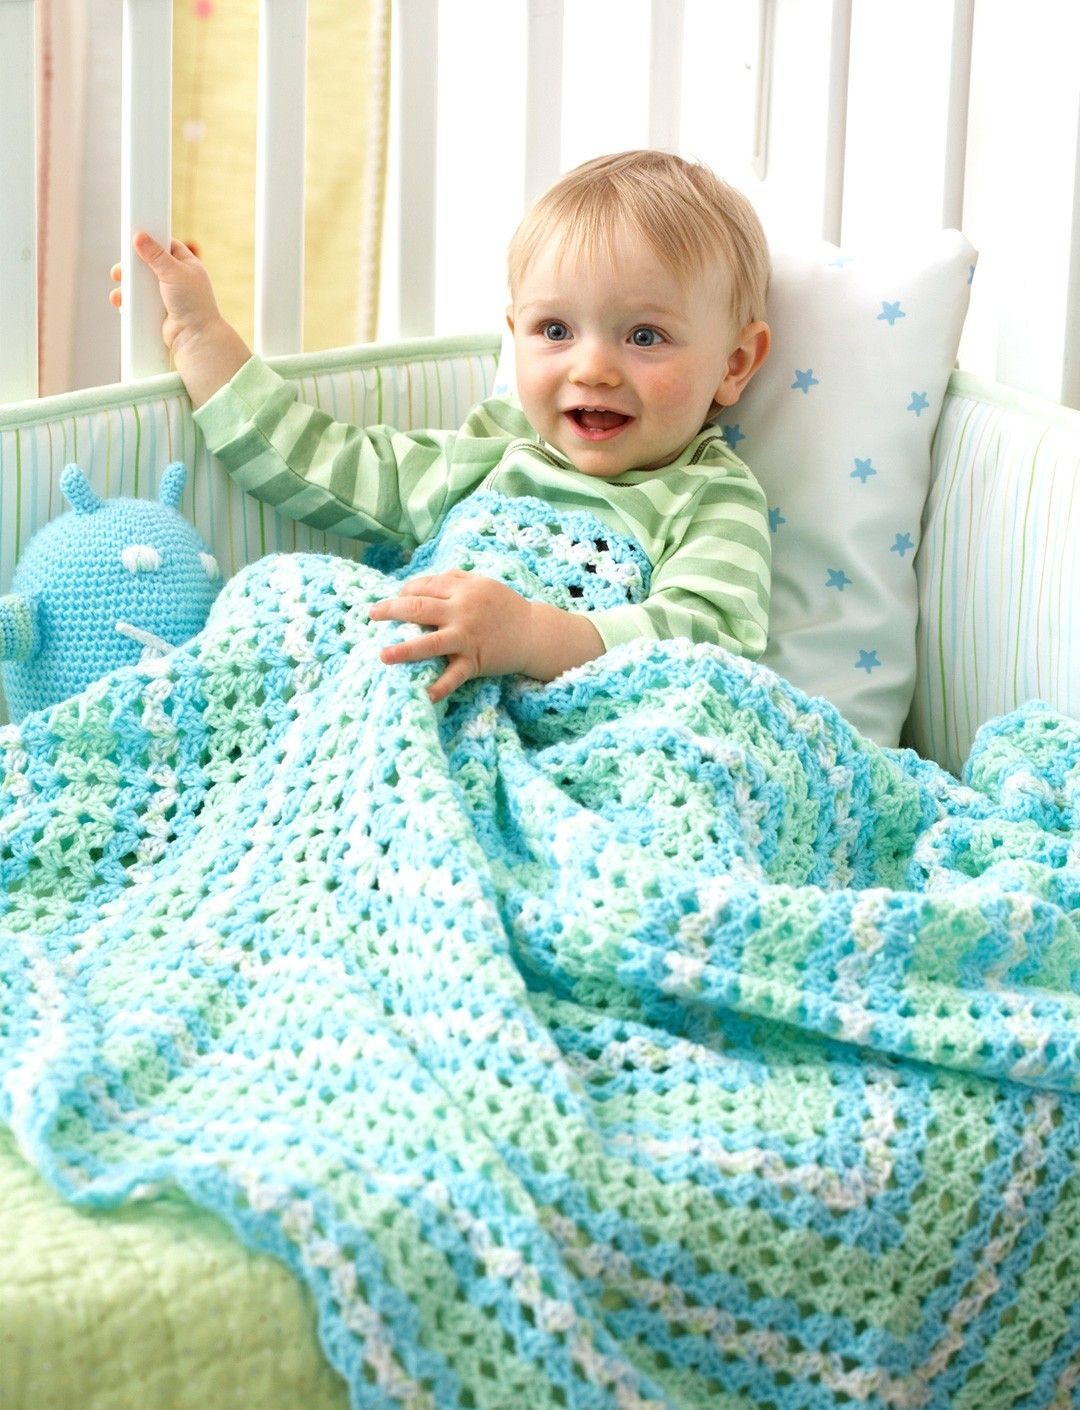 Yarnspirations bernat shell stitch blanket patterns lacy clustered blanket crocheted from the middle in soft shades of bernat big ball baby sport bankloansurffo Gallery